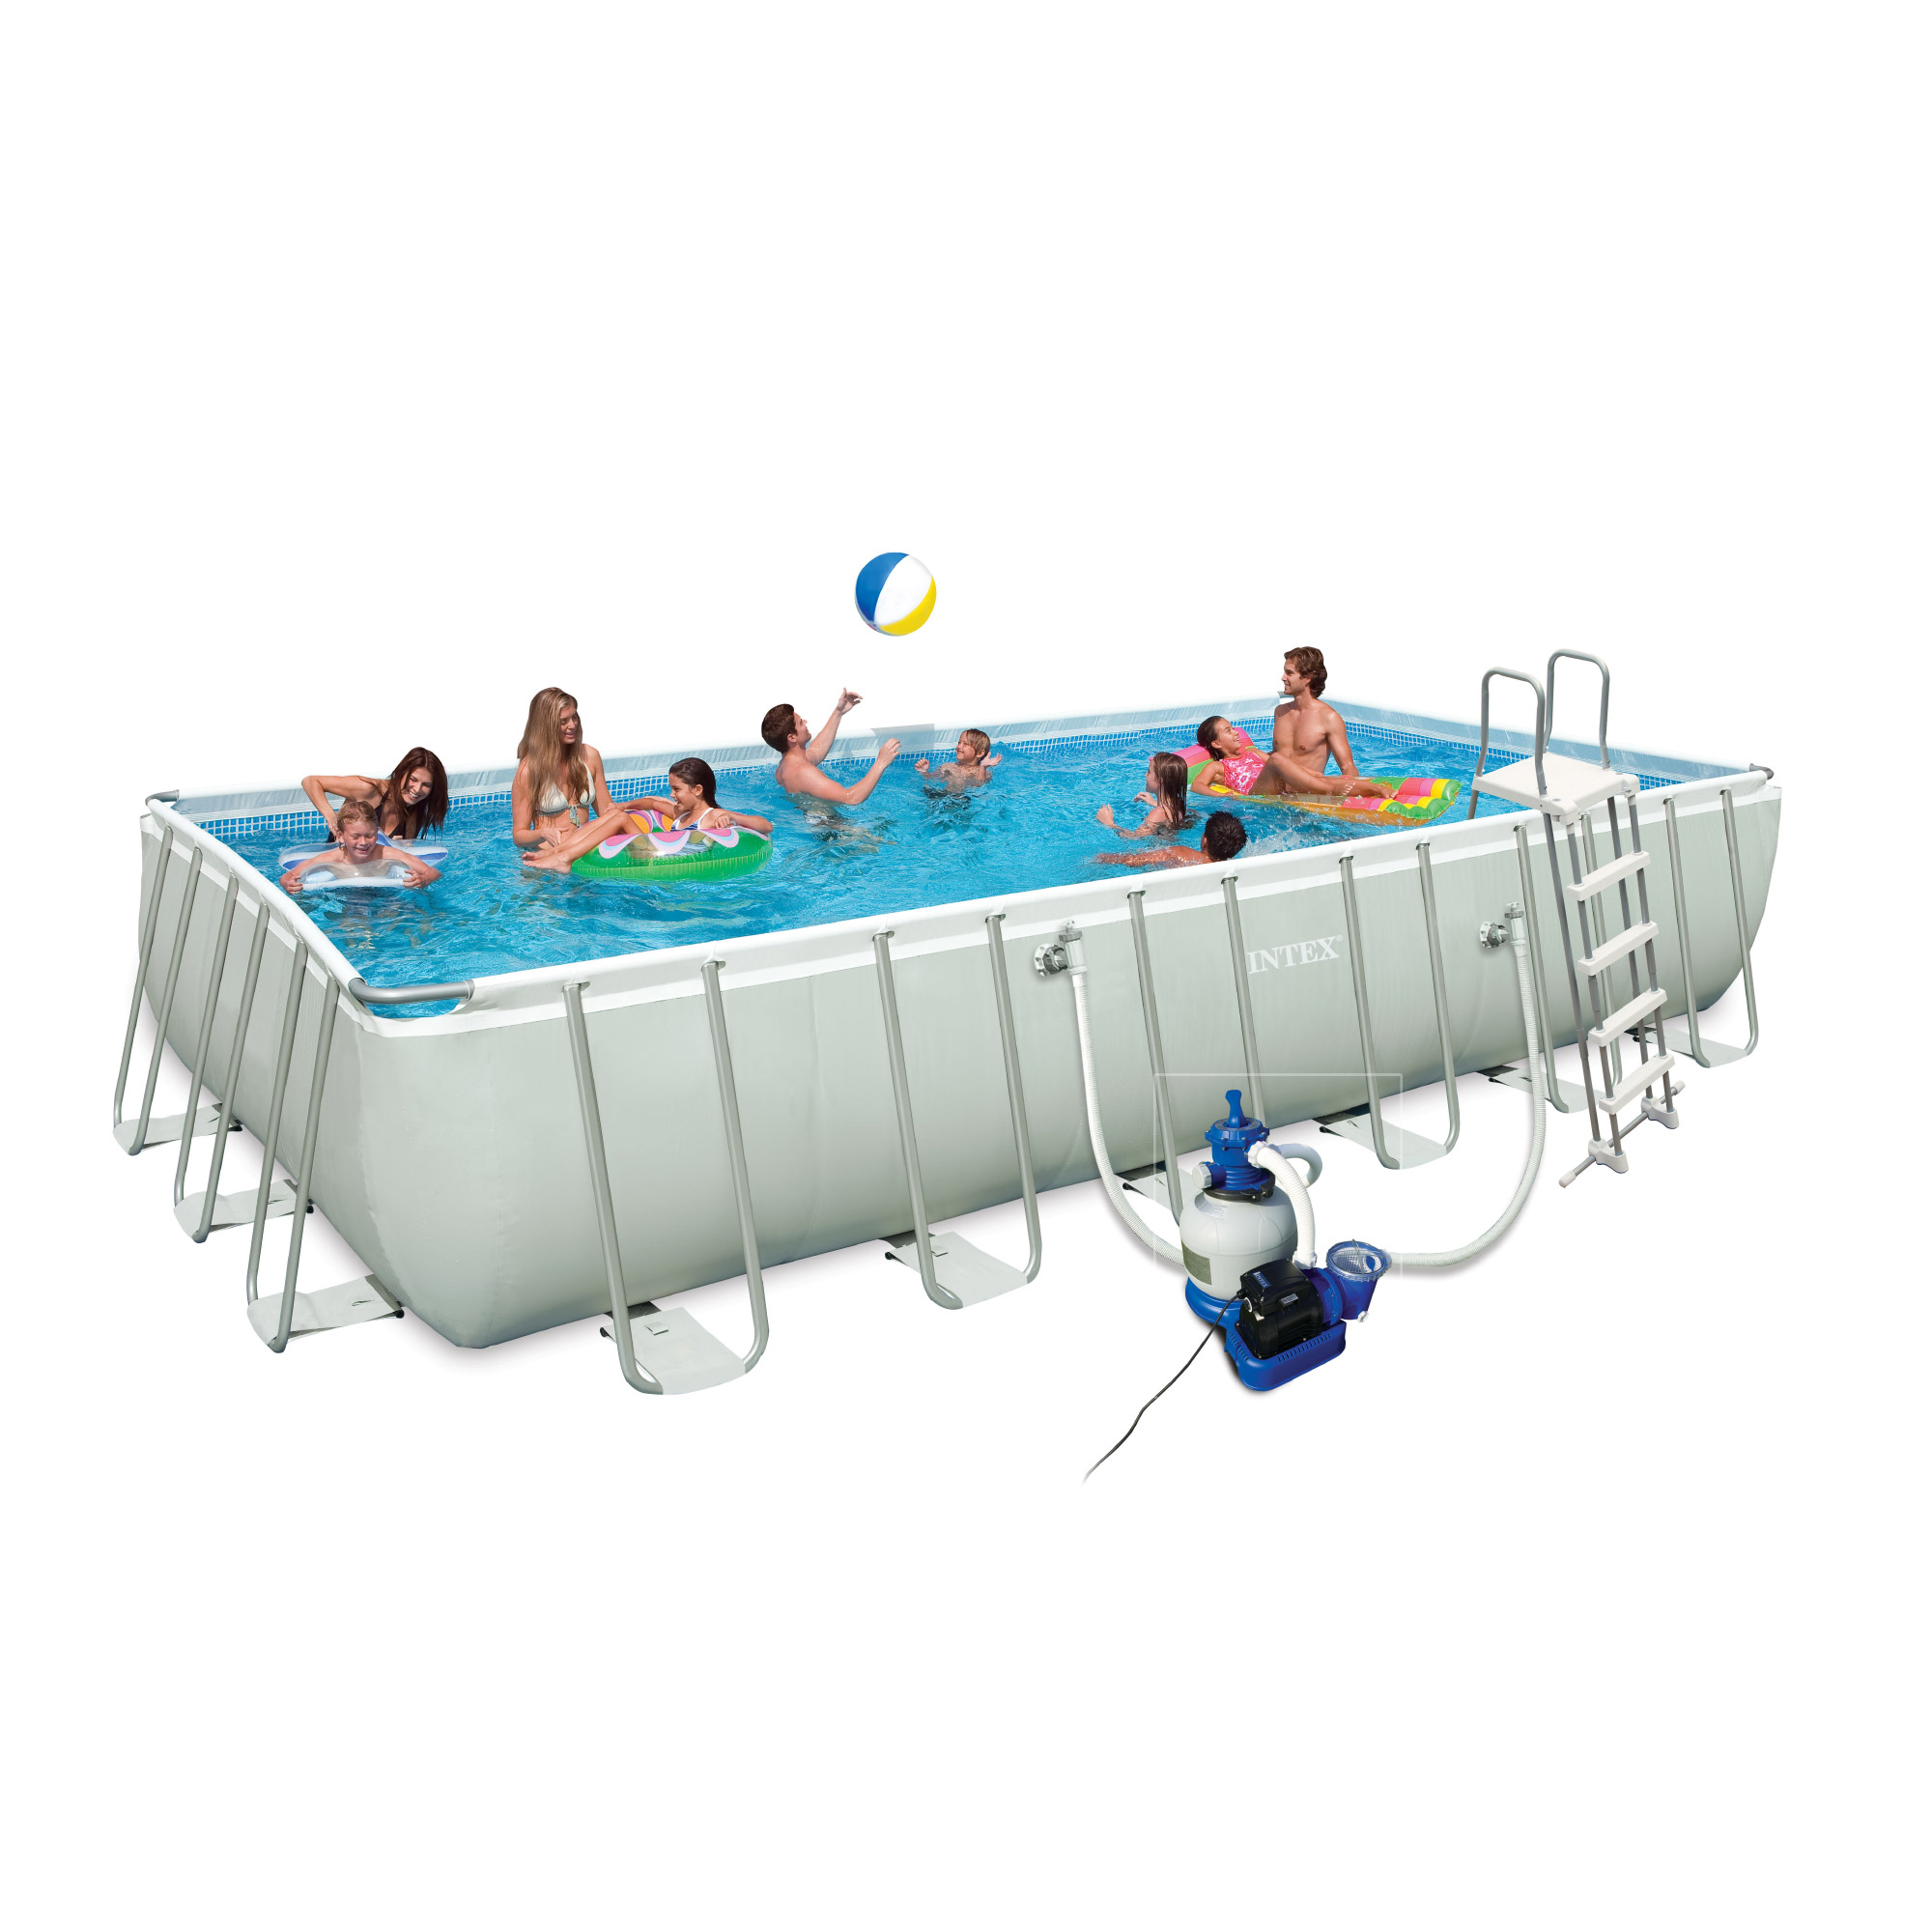 Intex 28362fr piscine hors sol tubulaire rectangulaire for Piscine hors sol intex